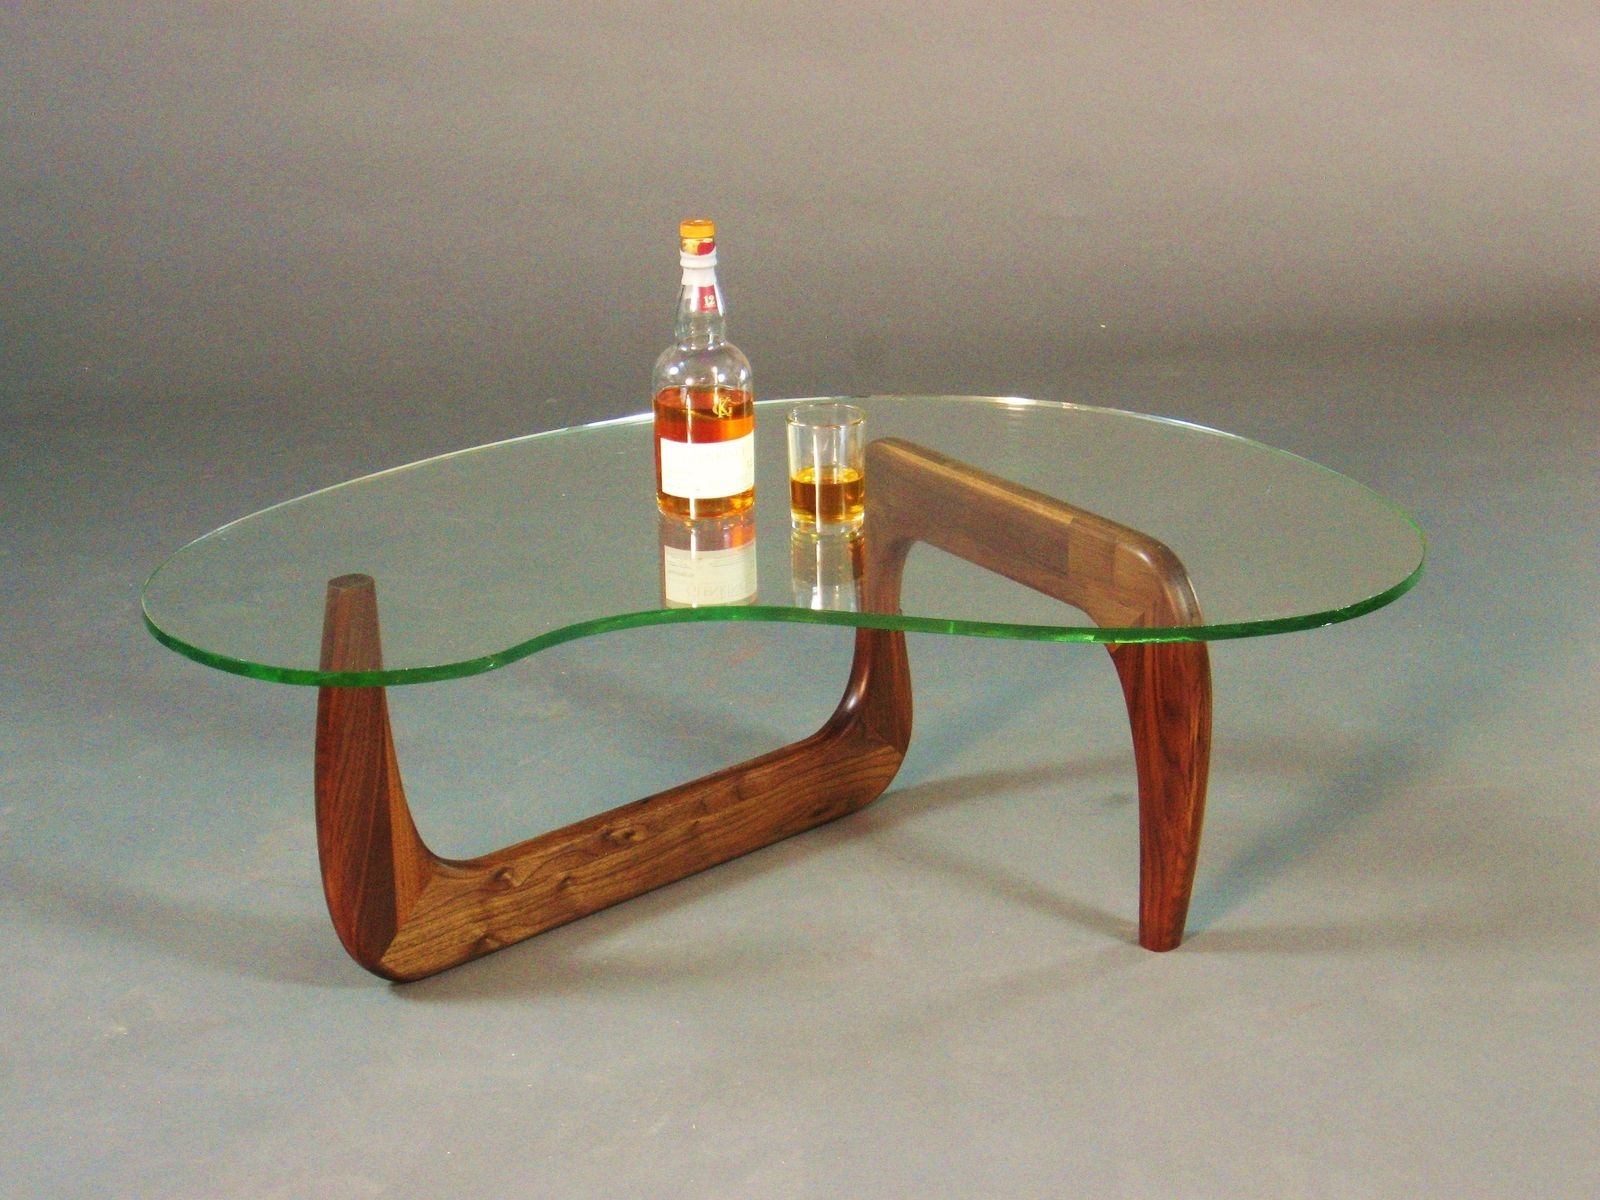 Buy a Custom Breakdown Kidney Table made to order from Gerspach